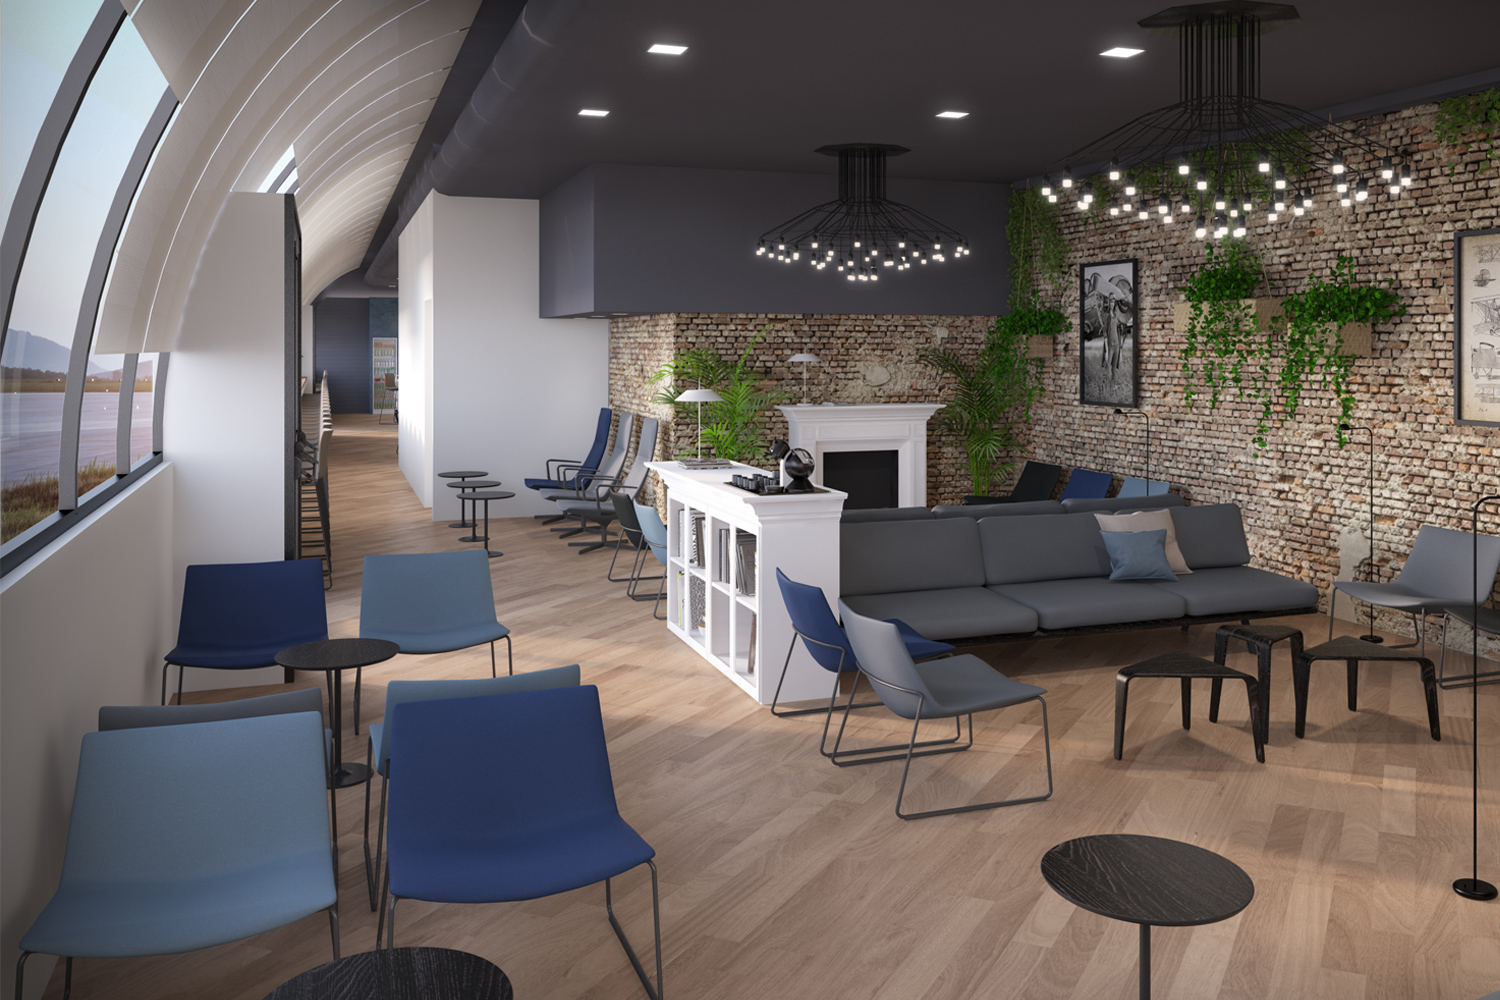 3-AP-PASSENGER-LOUNGE-AVIA-FCO-AIRPORT-UP-TO-YOU-STUDIO